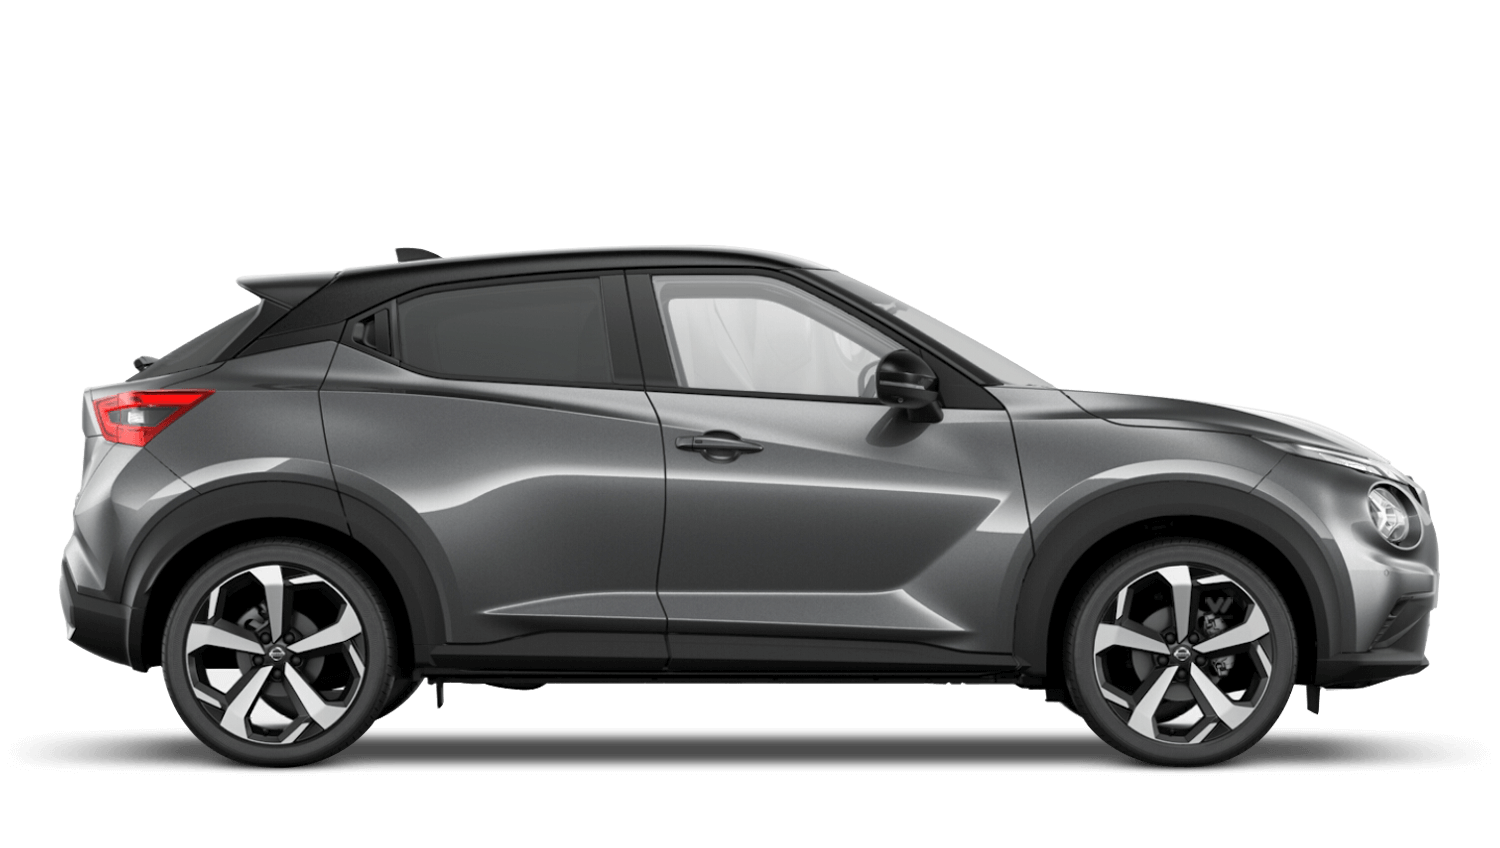 Gun Metallic with Pearl Black Roof Next Generation Nissan Juke